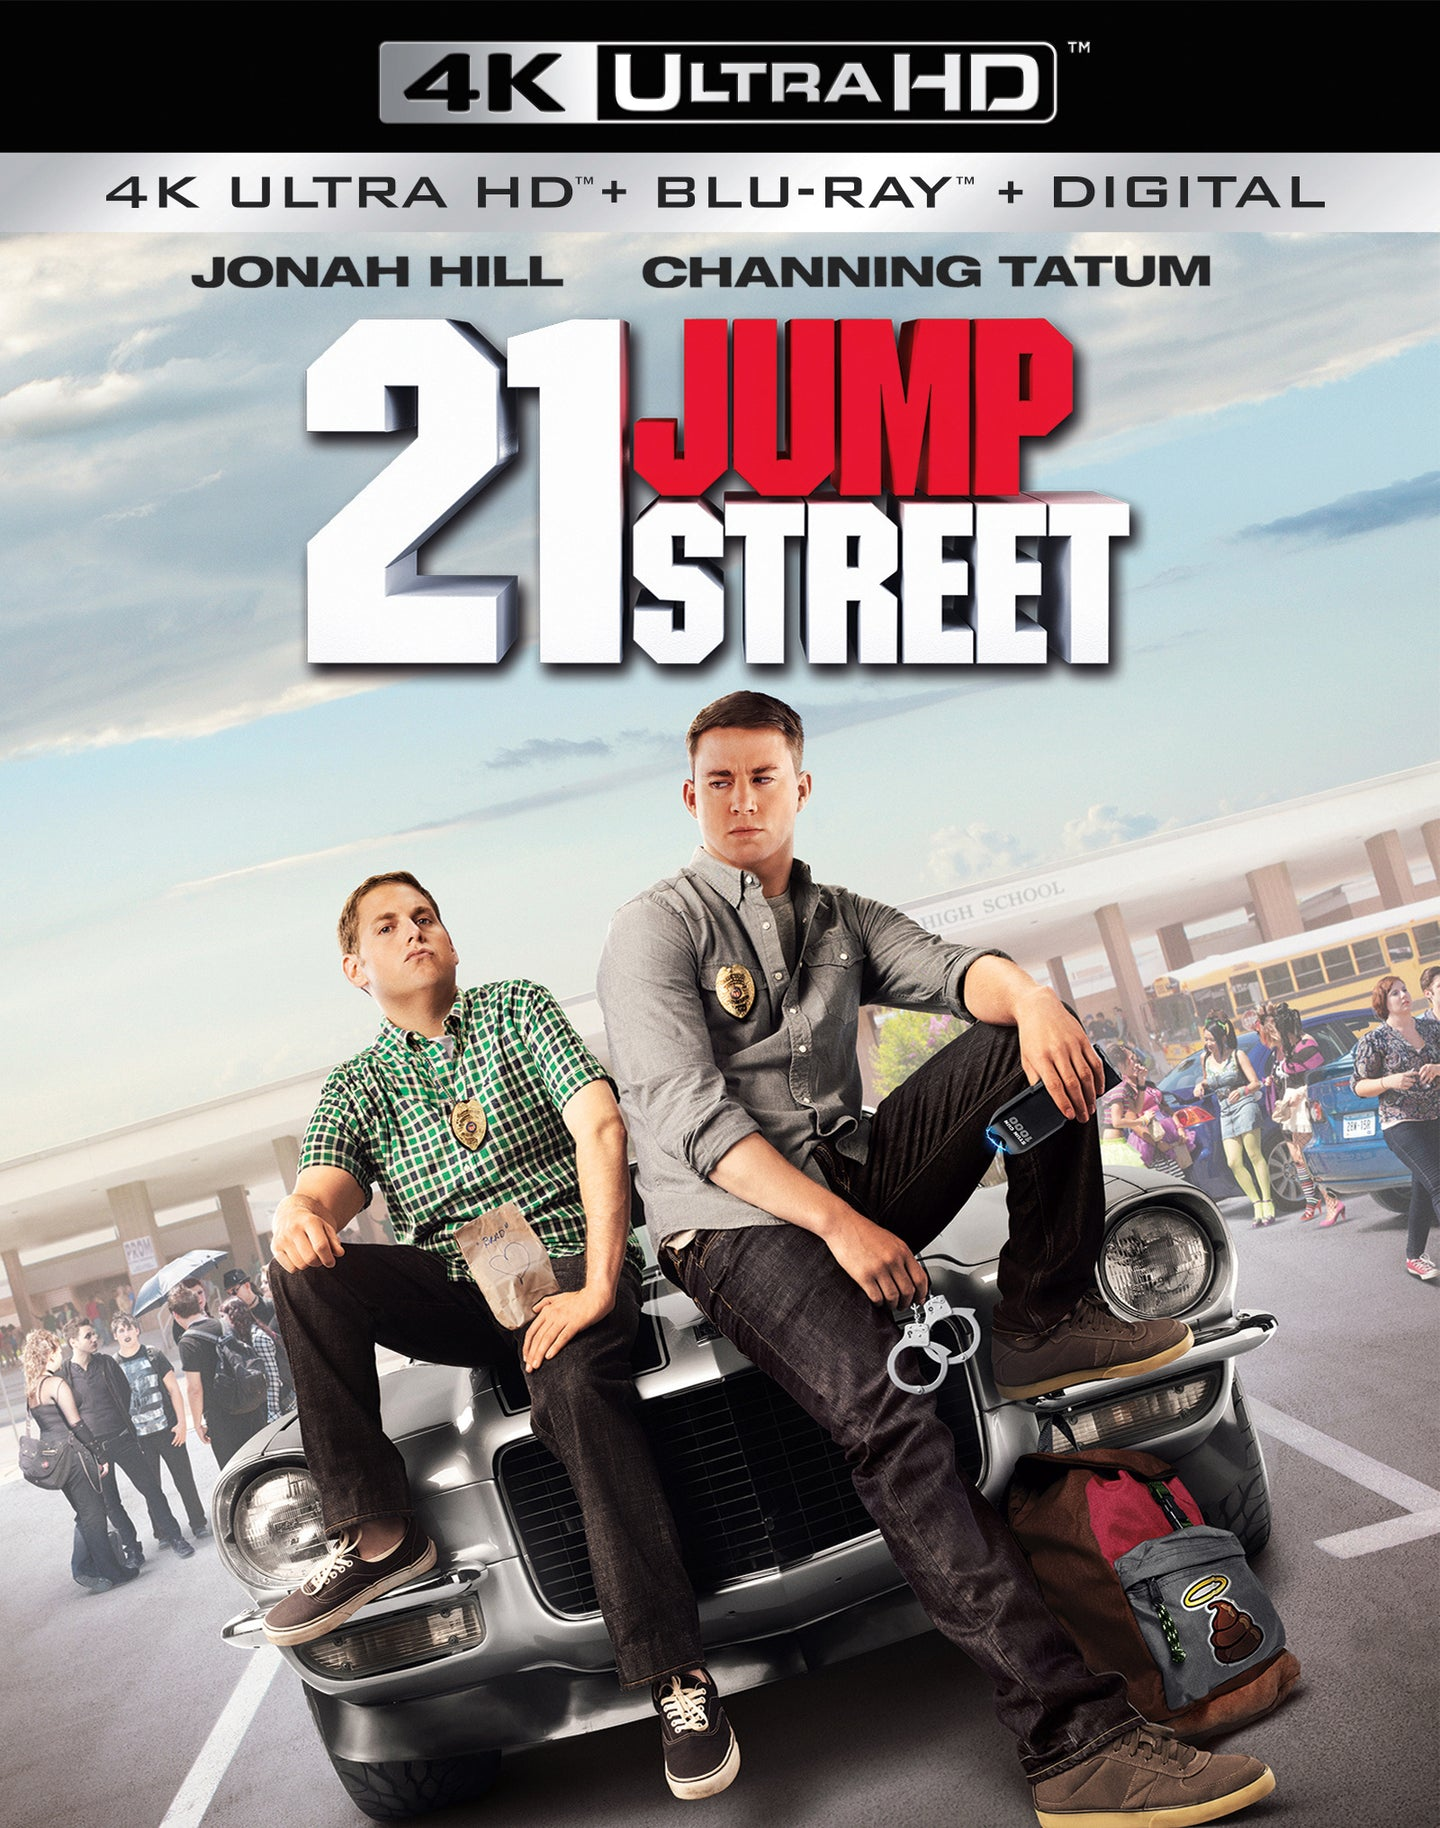 21 Jump Street (2012) Vudu or Movies Anywhere 4K code